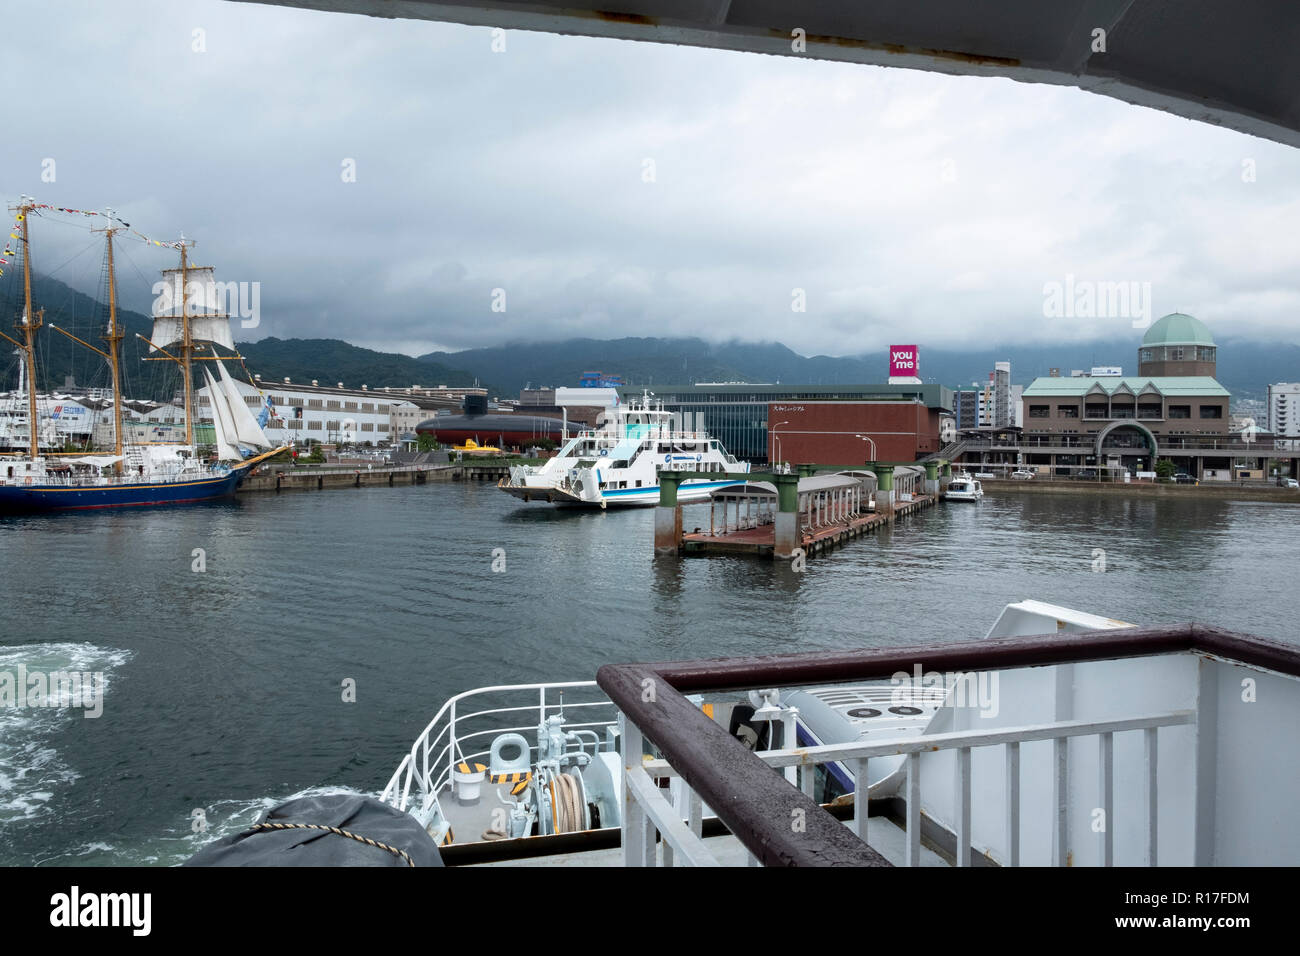 A ferry arriving at the Kure port in Hiroshima Prefecture, Japan - Stock Image